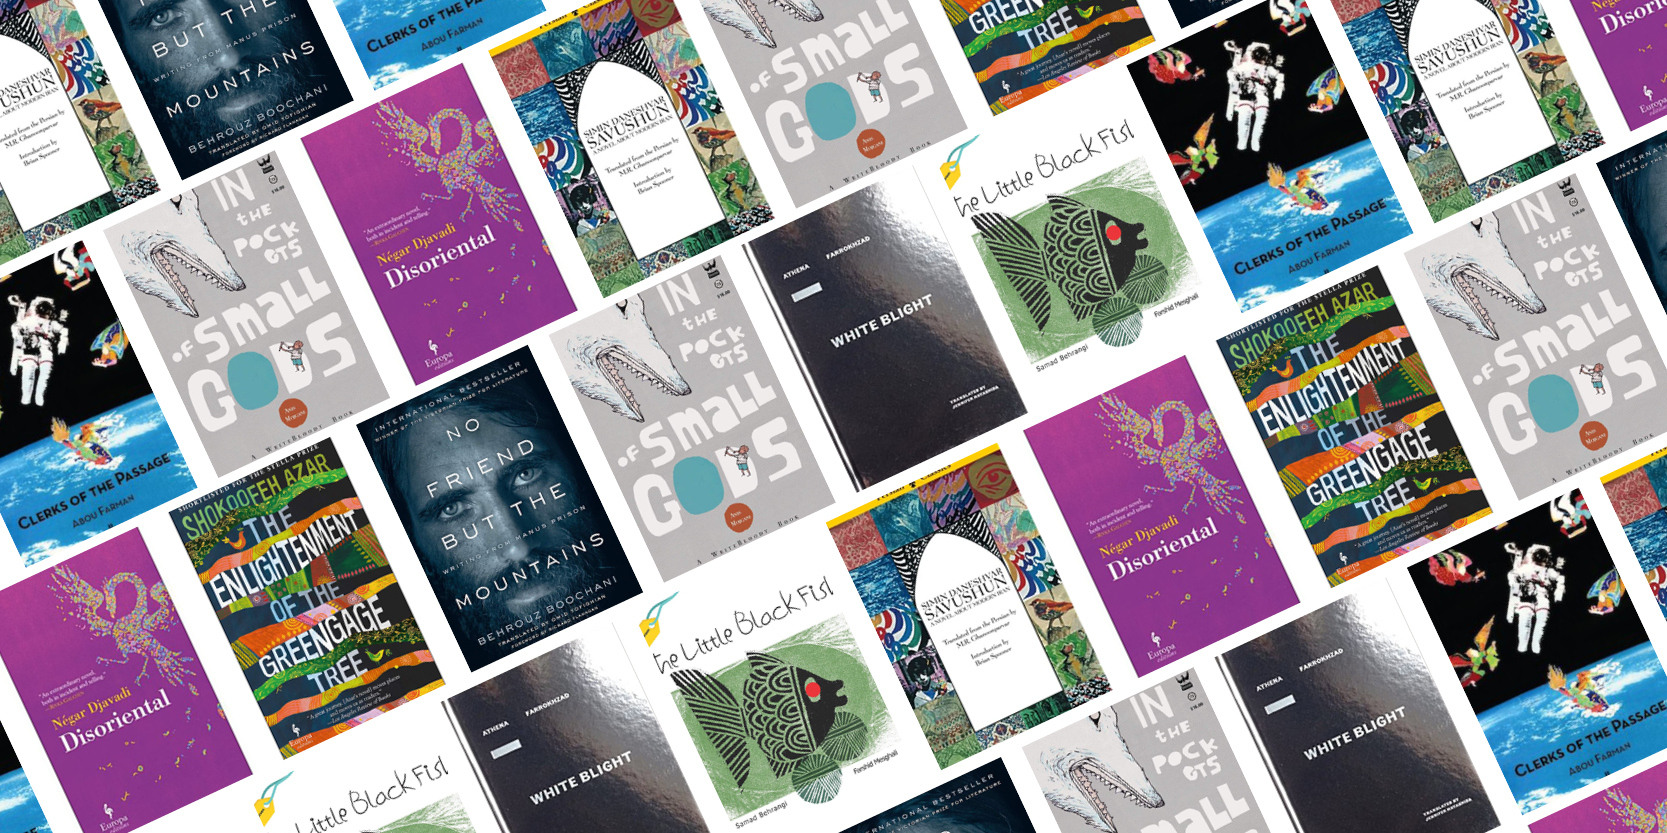 Essential Books by Iranian Writers Reading List book covers